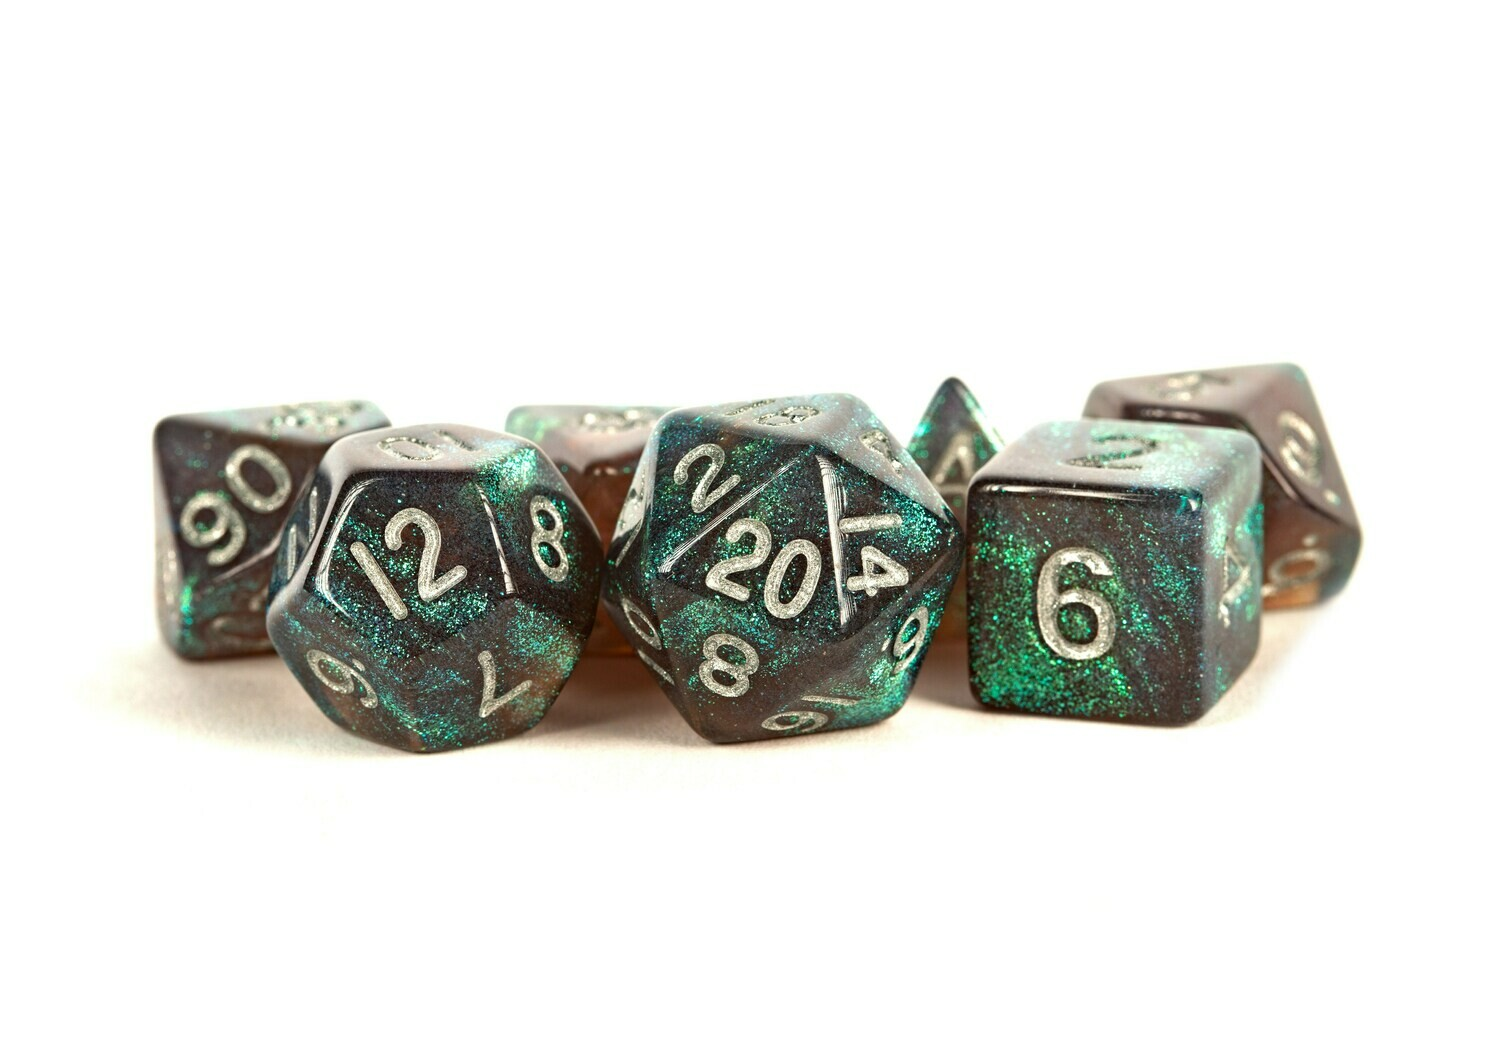 Stardust Gray with Silver 16mm Poly Dice Set Tabletop RPG Gaming Roleplay Games